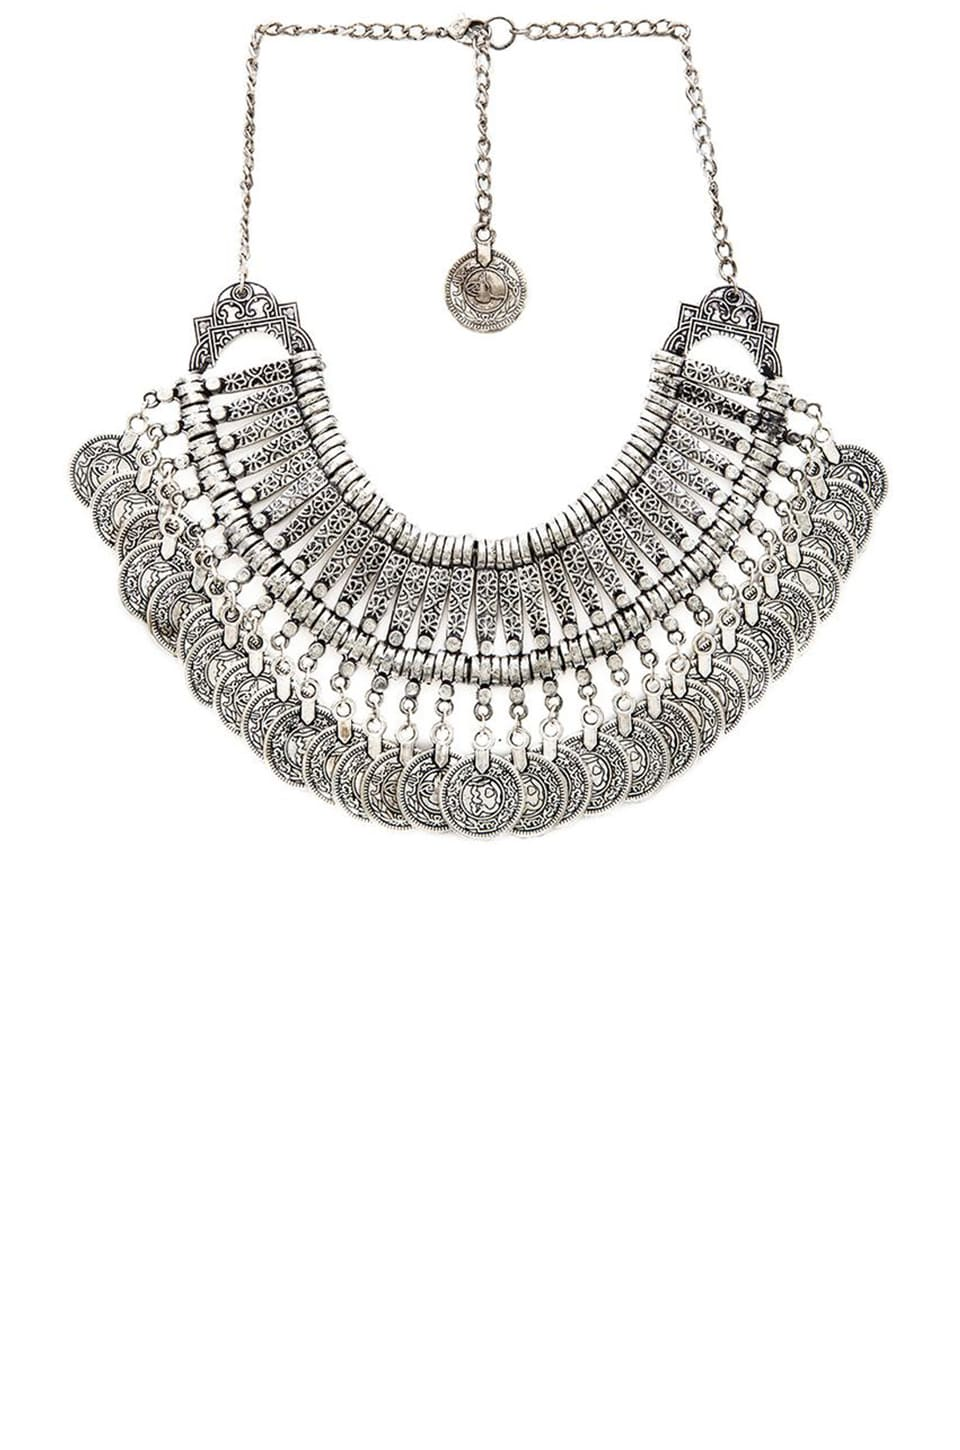 Raga Drop Coin Bib Necklace in Silver